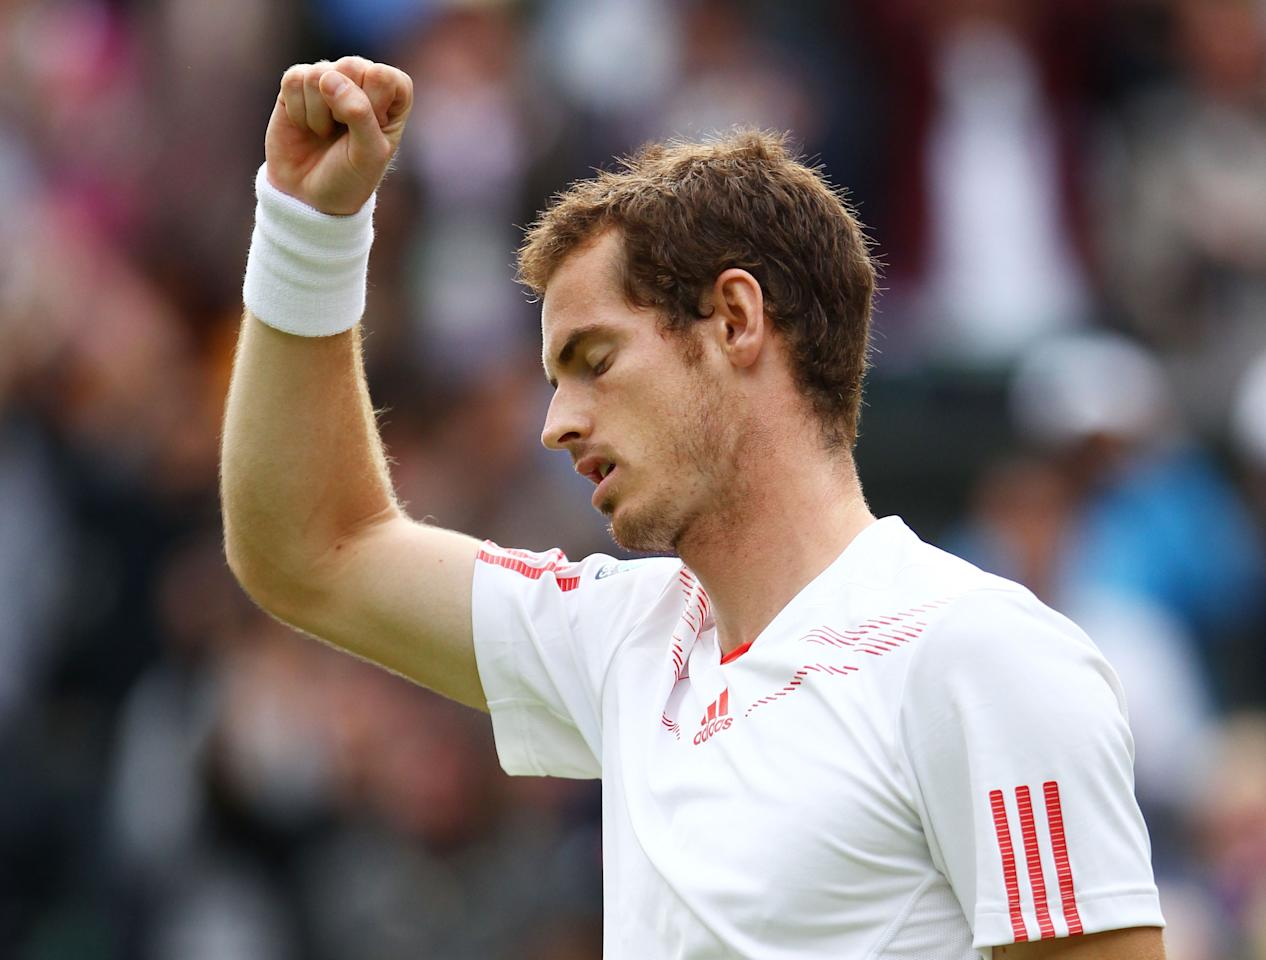 LONDON, ENGLAND - JULY 04:  Andy Murray of Great Britain celebrates match point during his Gentlemen's Singles quarter final match against David Ferrer of Spain on day nine of the Wimbledon Lawn Tennis Championships at the All England Lawn Tennis and Croquet Club on July 4, 2012 in London, England.  (Photo by Clive Brunskill/Getty Images)